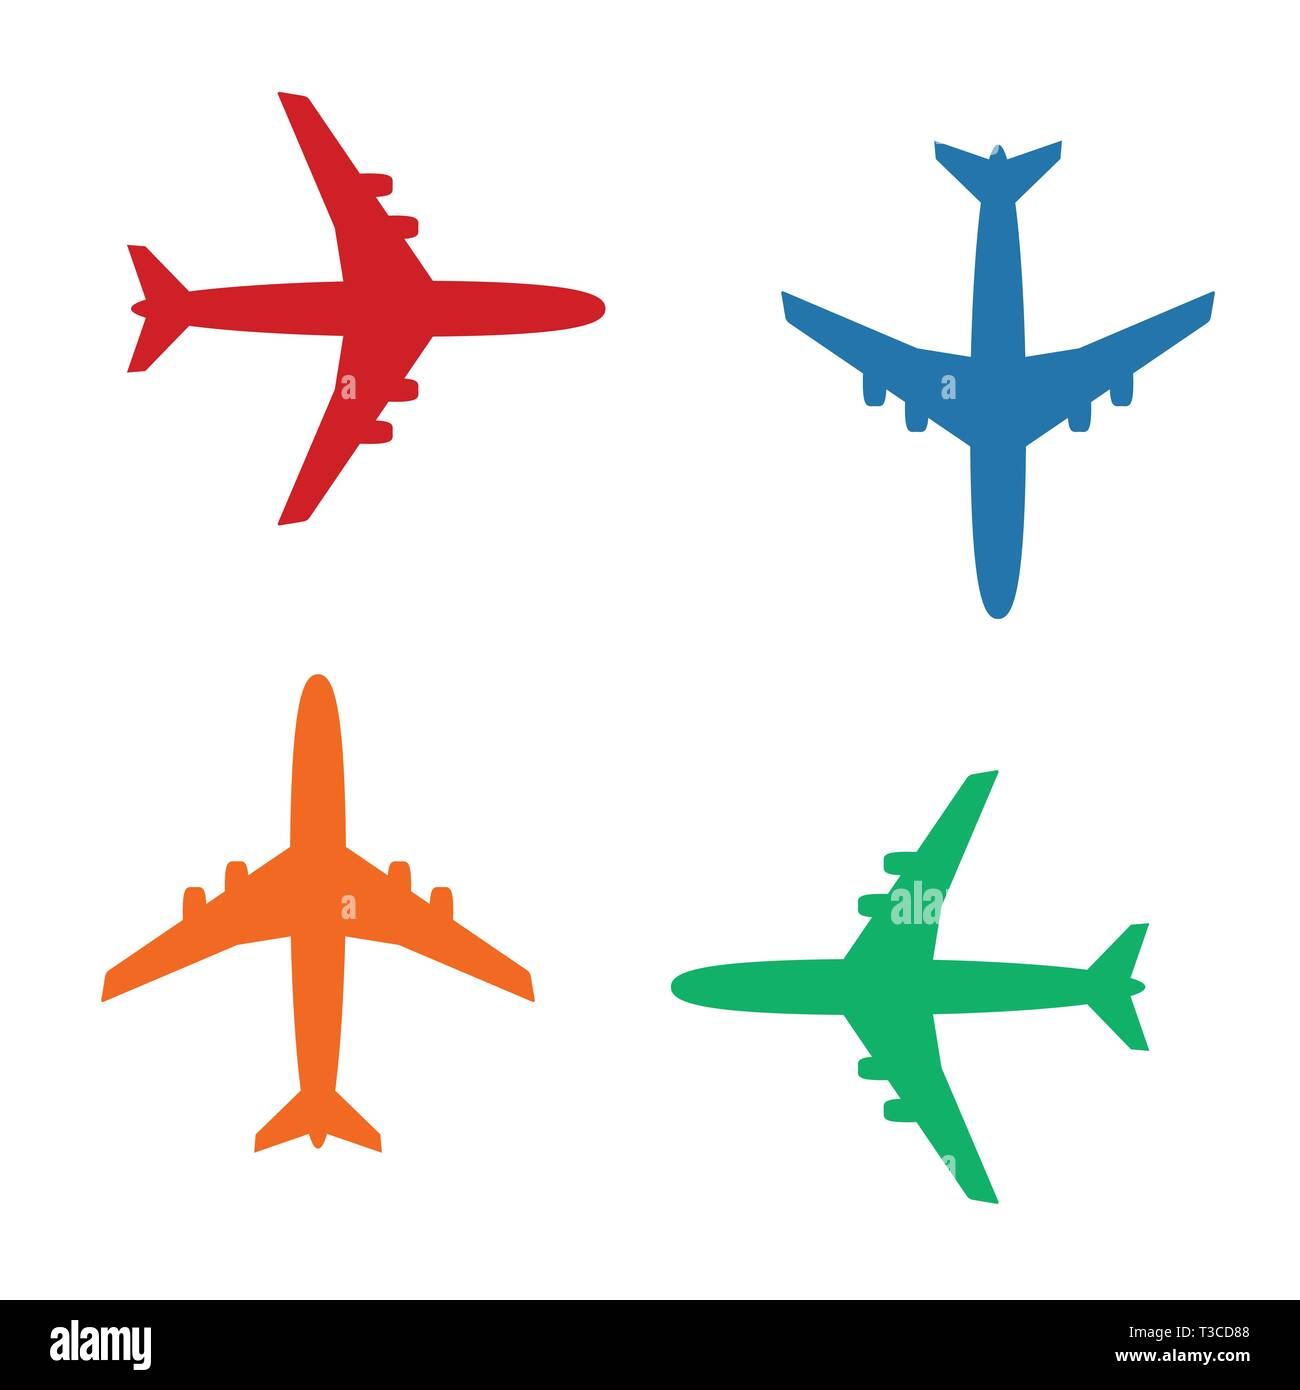 Plane icons vector, solid illustration, color pictograms